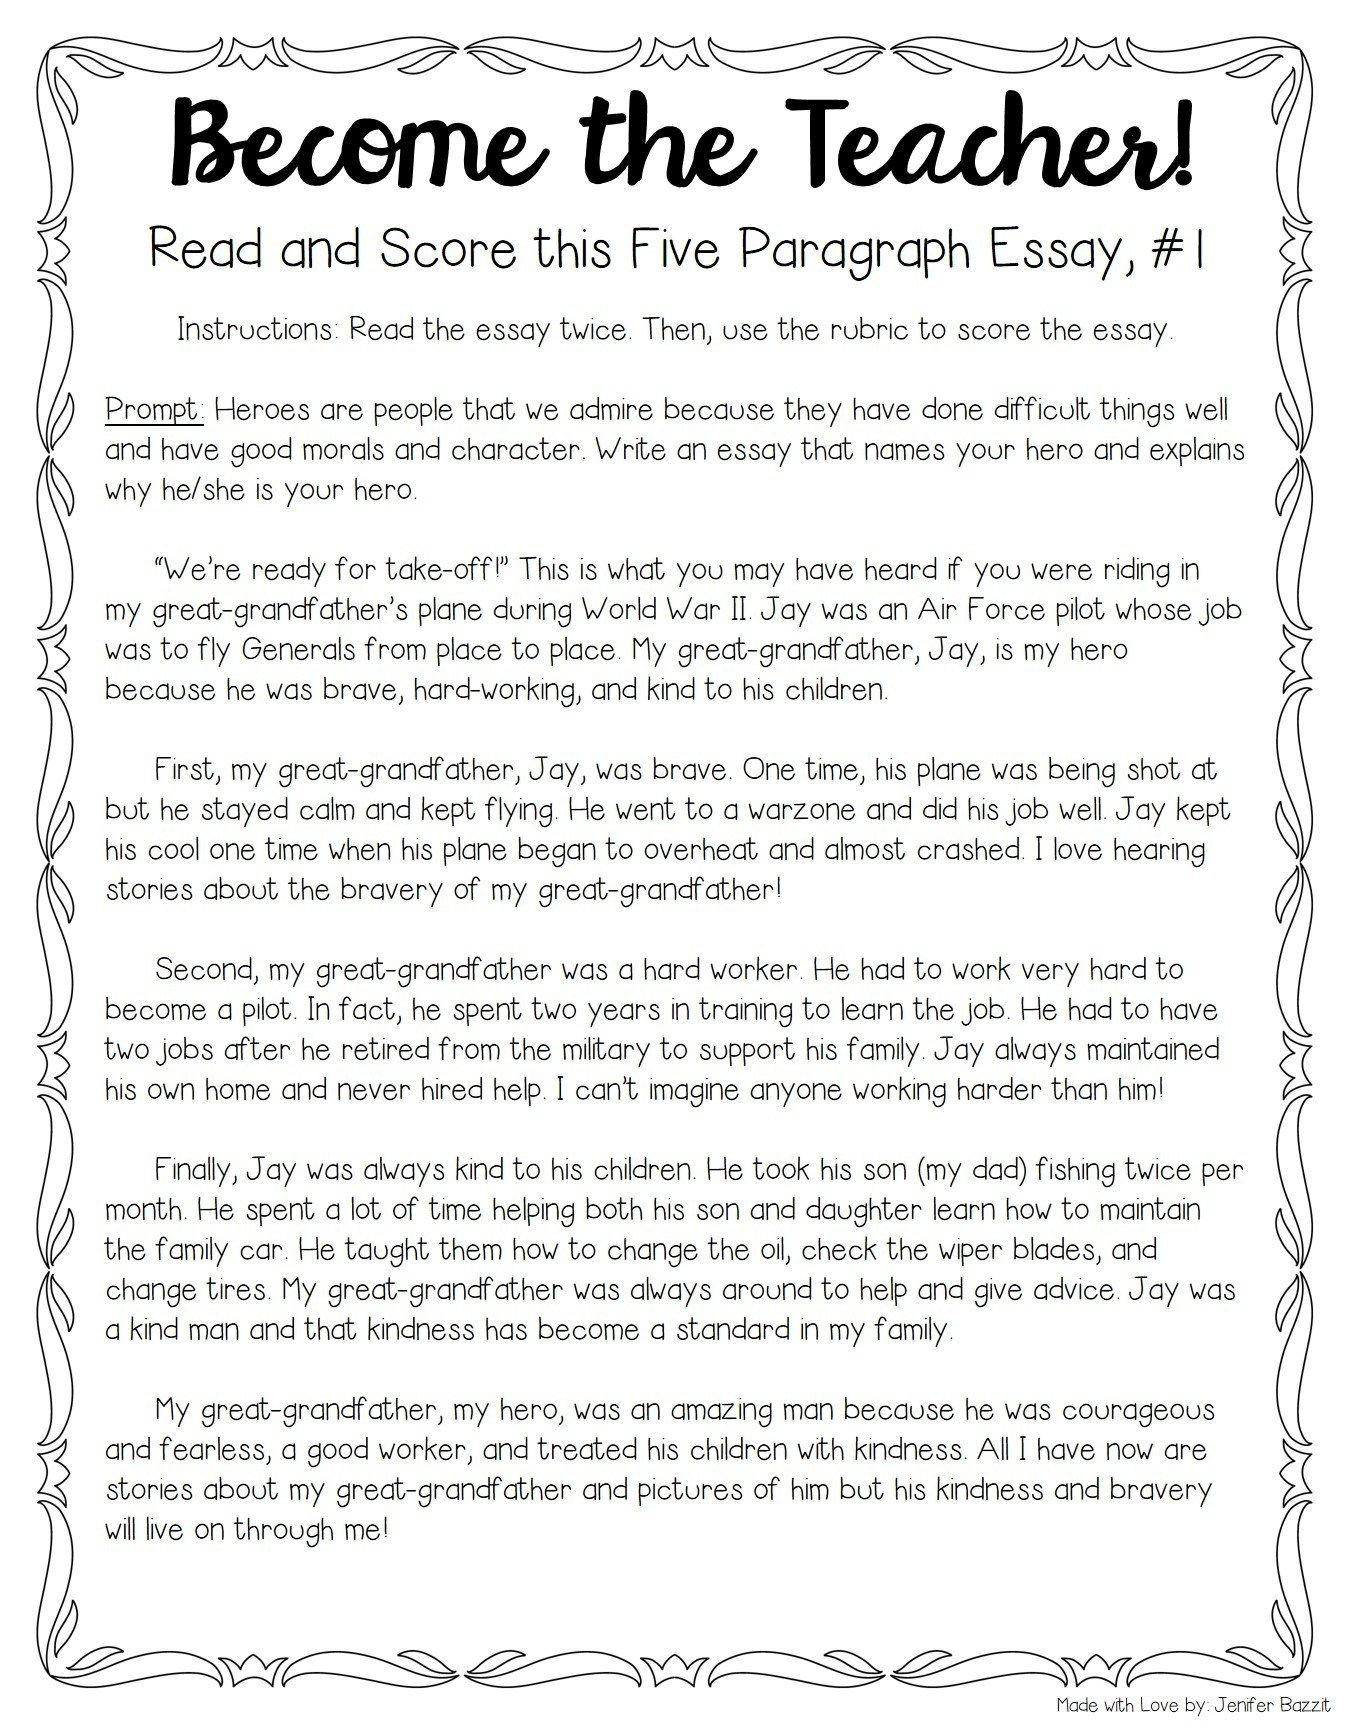 Tips For Teaching And Grading Five Paragraph Essays With